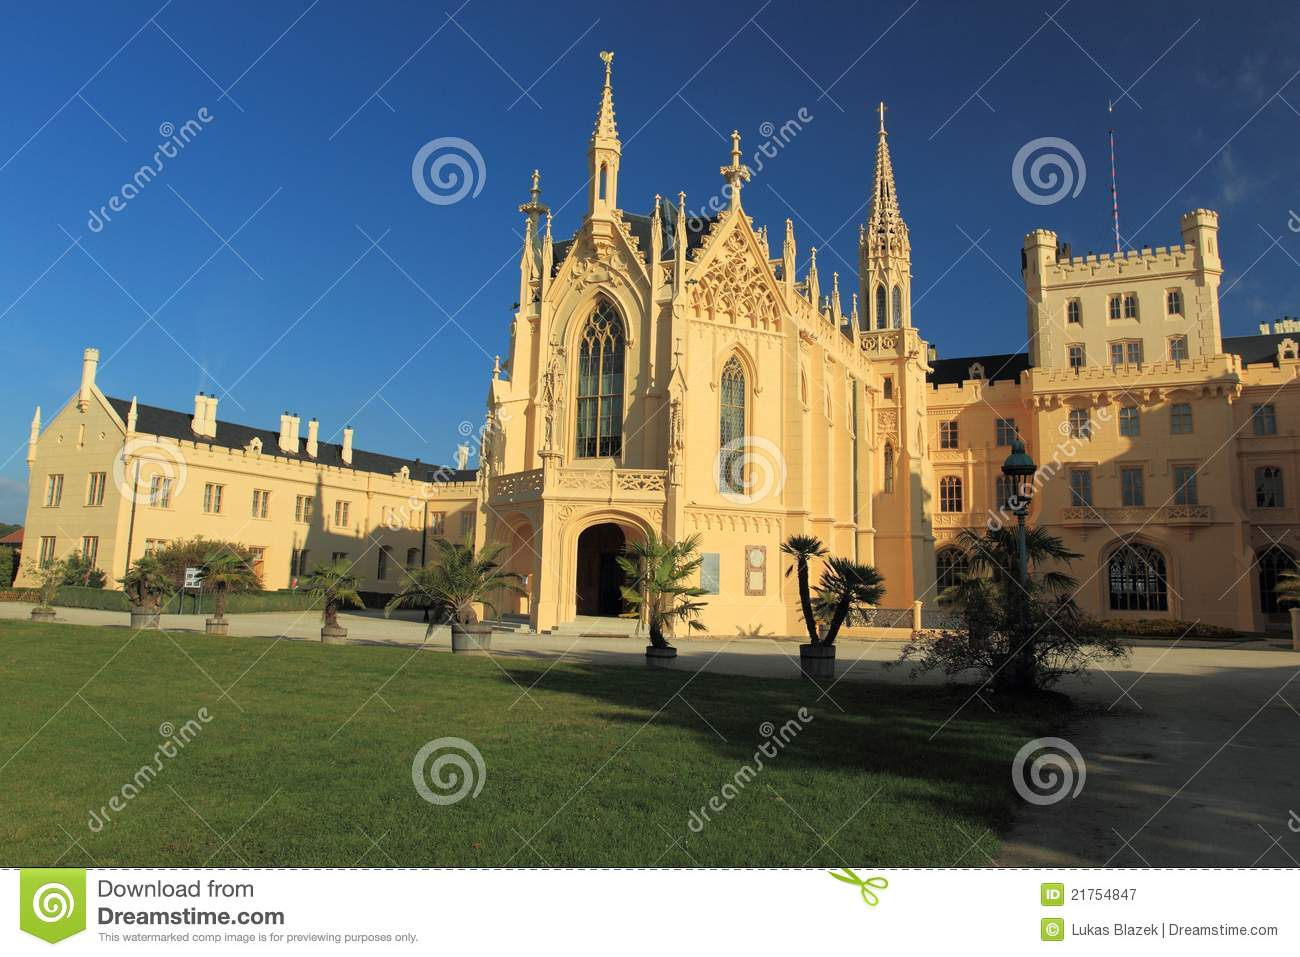 Download Lednice stock image. Image of chateau, castle, view, historic - 21754847